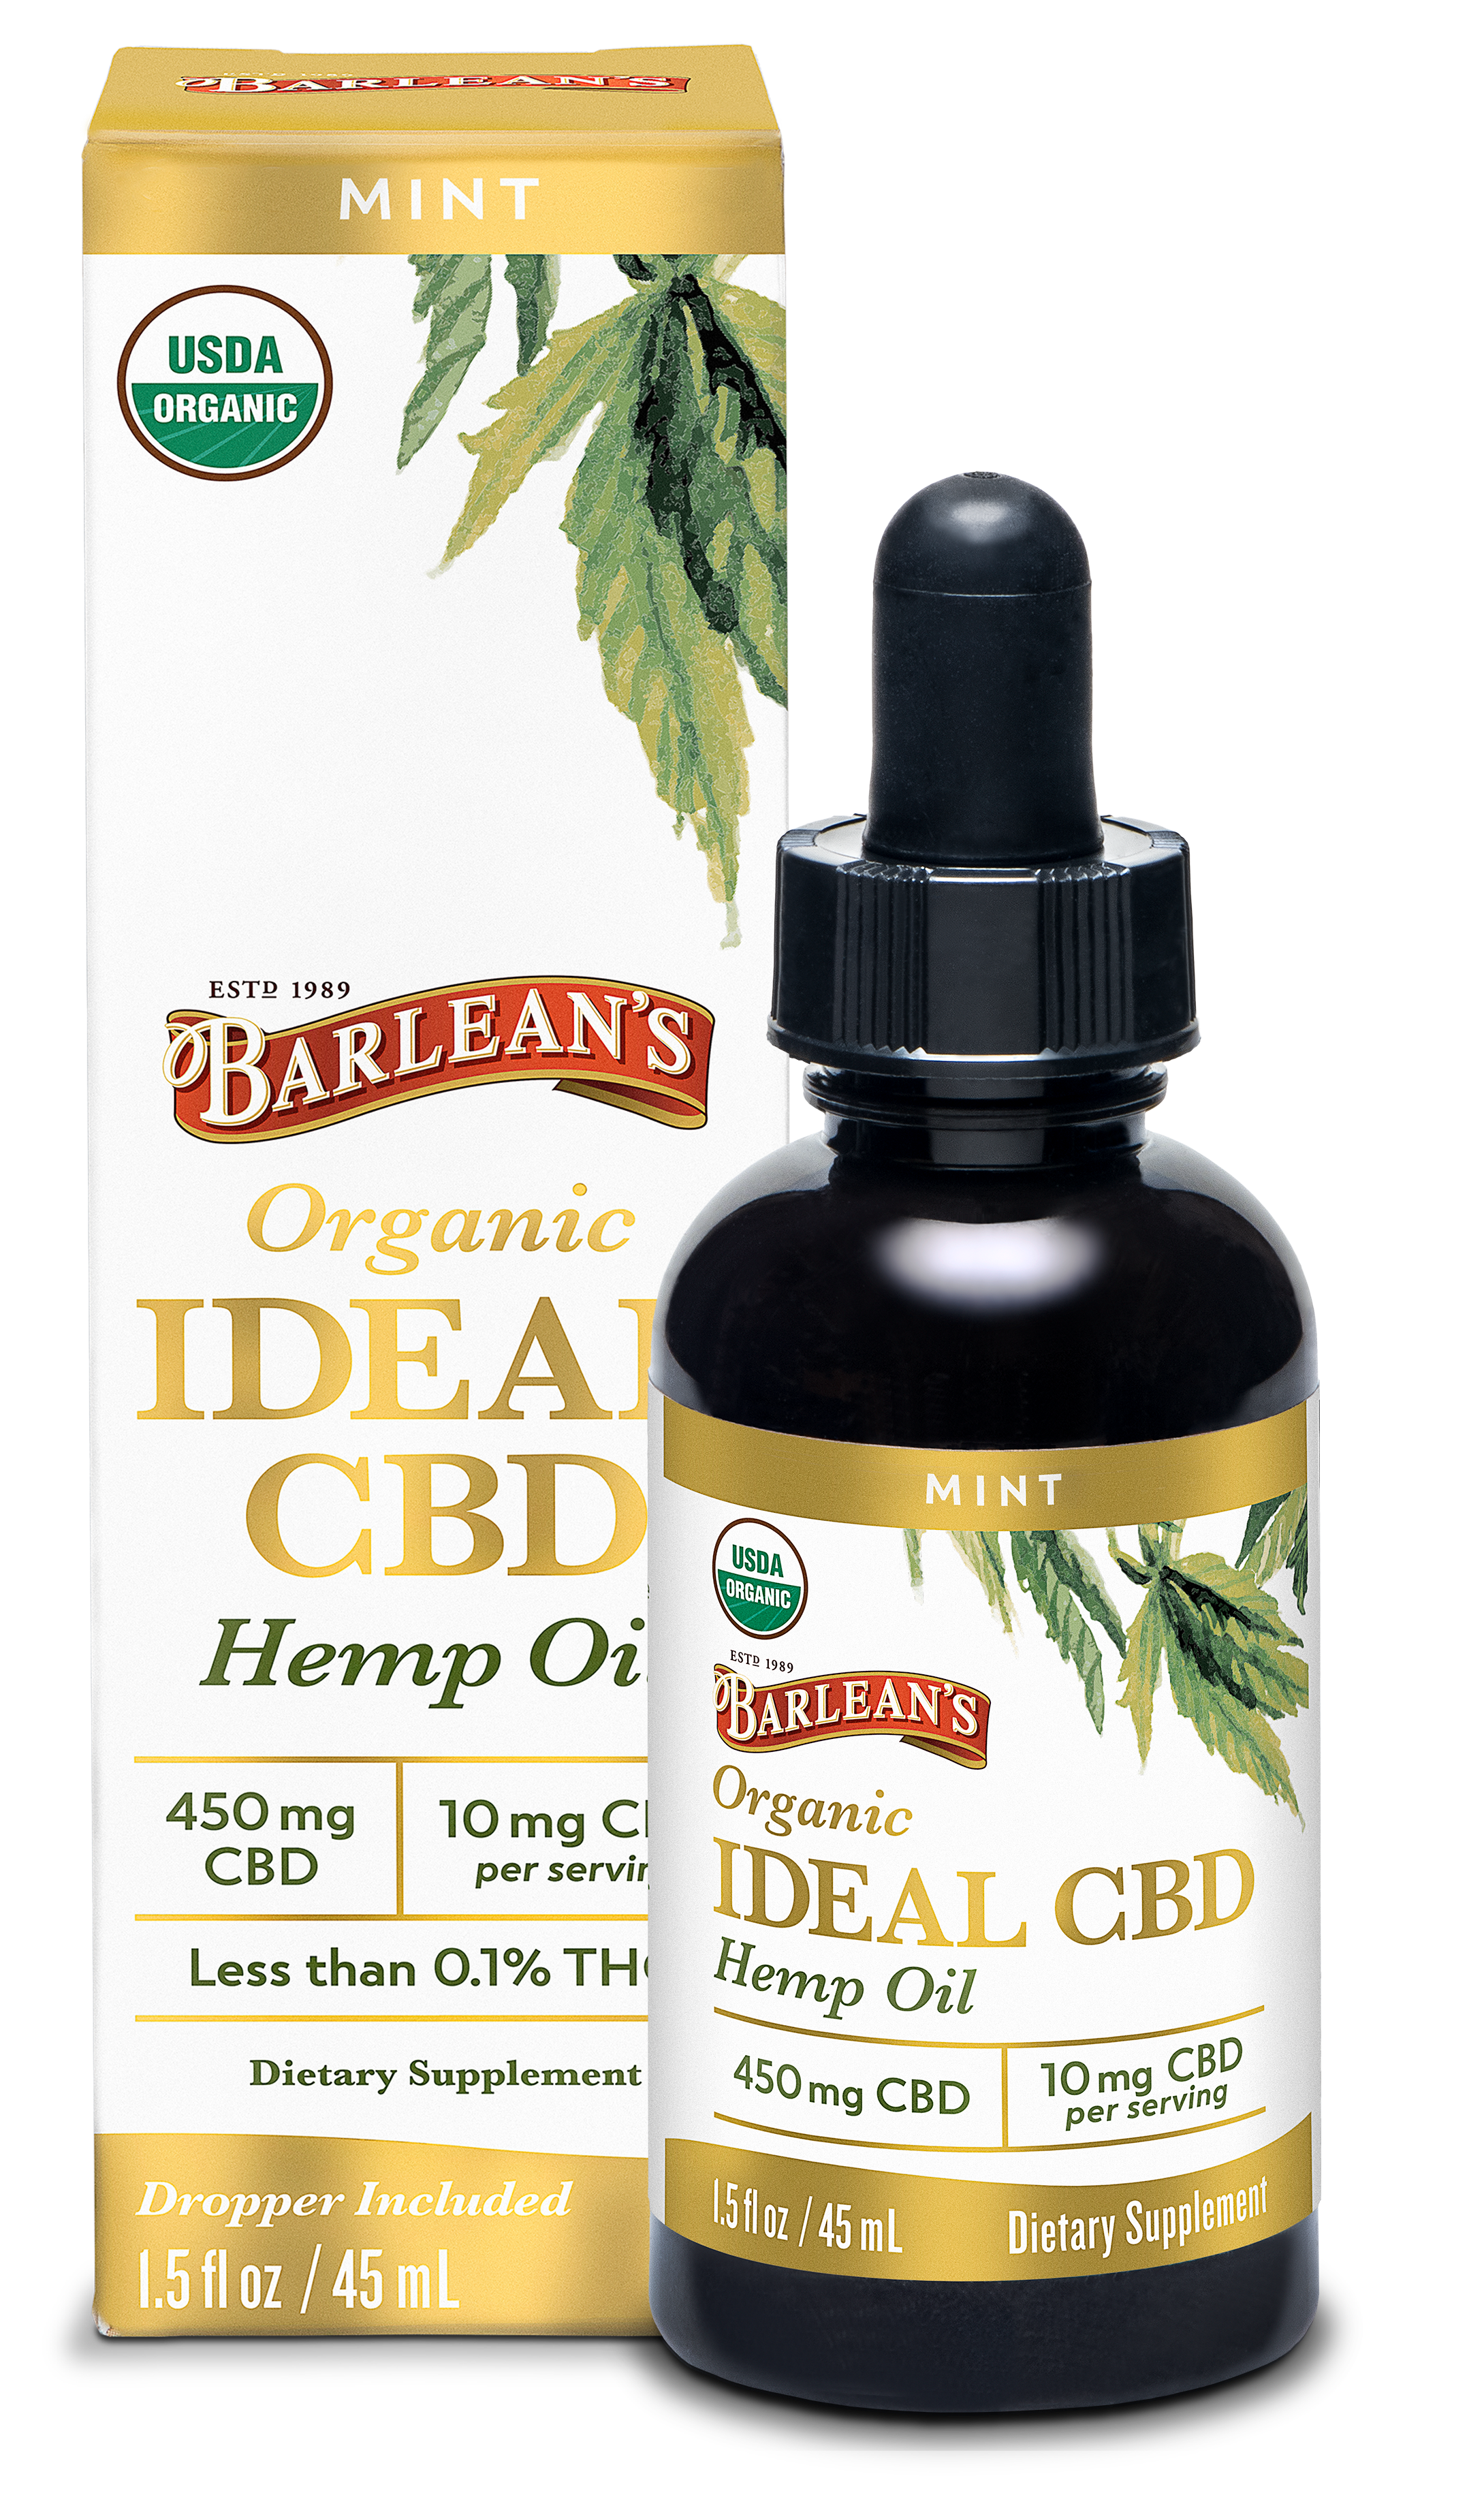 Organic CBD Box & Bottles